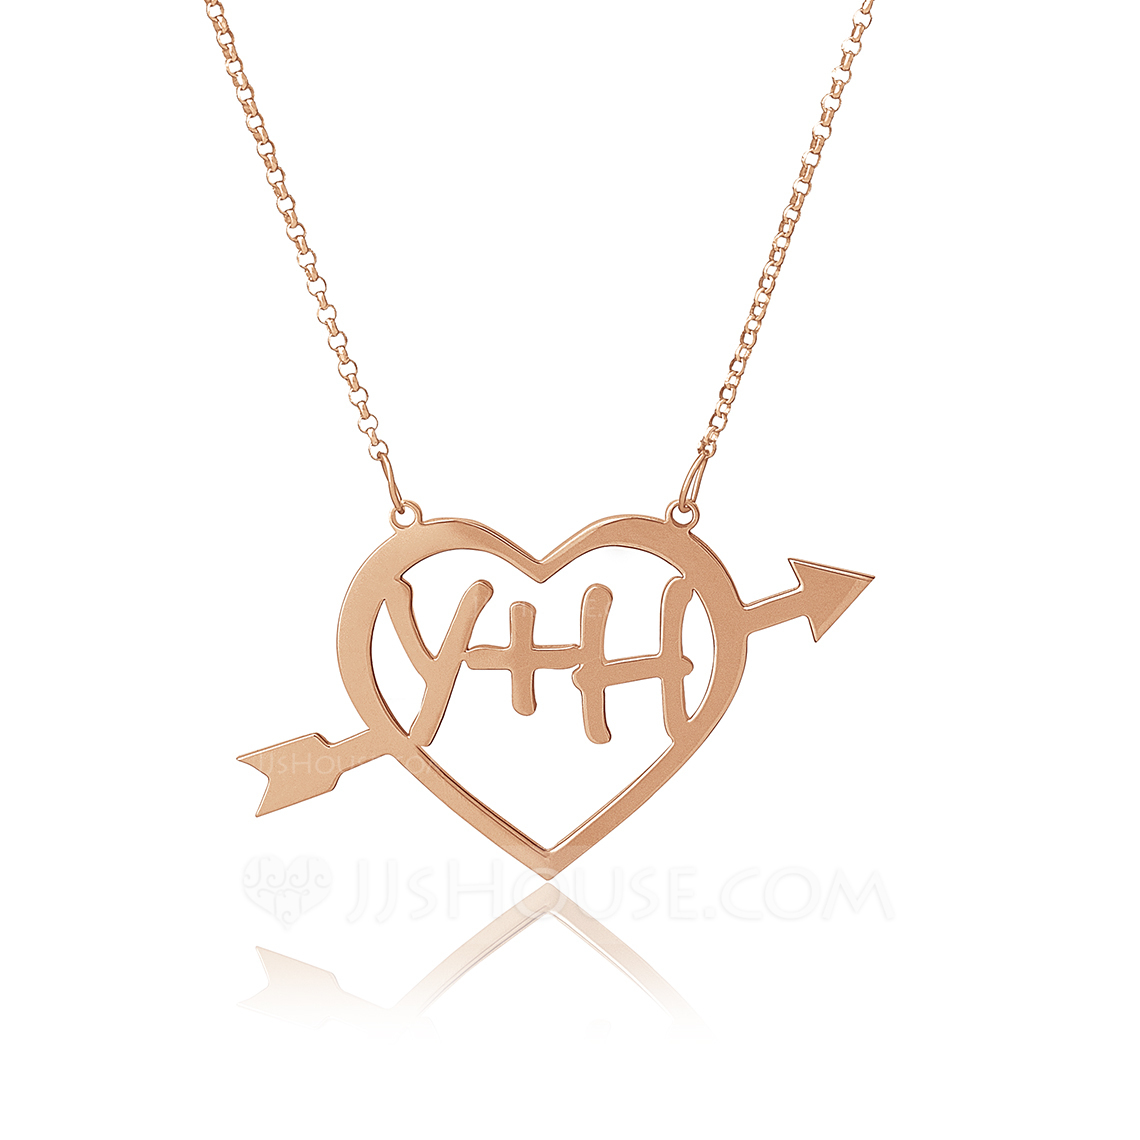 Custom 18k Rose Gold Plated Silver Initial Letter Two Heart Necklace Initial Necklace With Arrow - Birthday Gifts Mother's Day Gifts